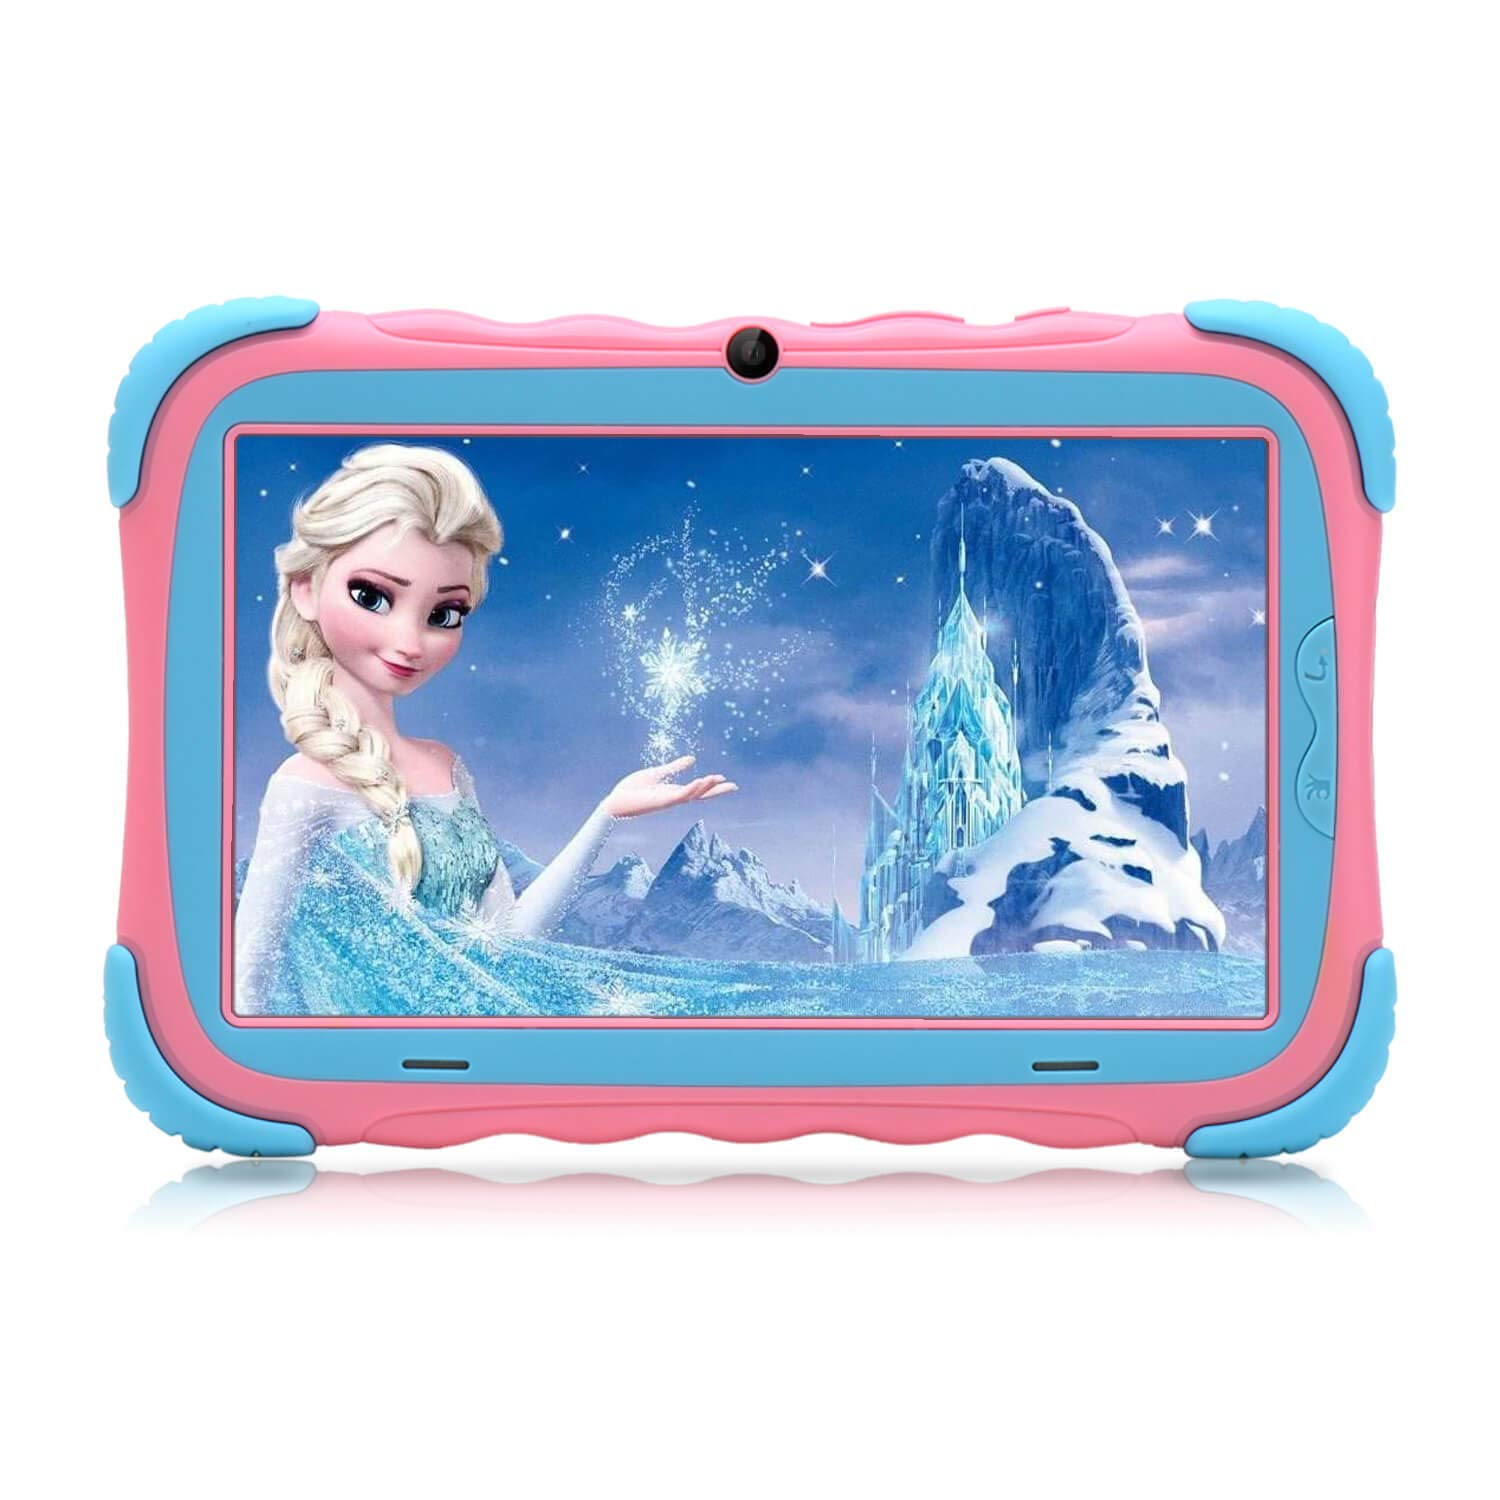 Kids Tablet - 7 inch Kids Edition Tablet with IPS Safety Eye Protection Screen, Android 7.1 WiFi, Camera, Games, Google Play Store, Bluetooth, and 1GB/16GB Storage iRULU Y57 (Pink)